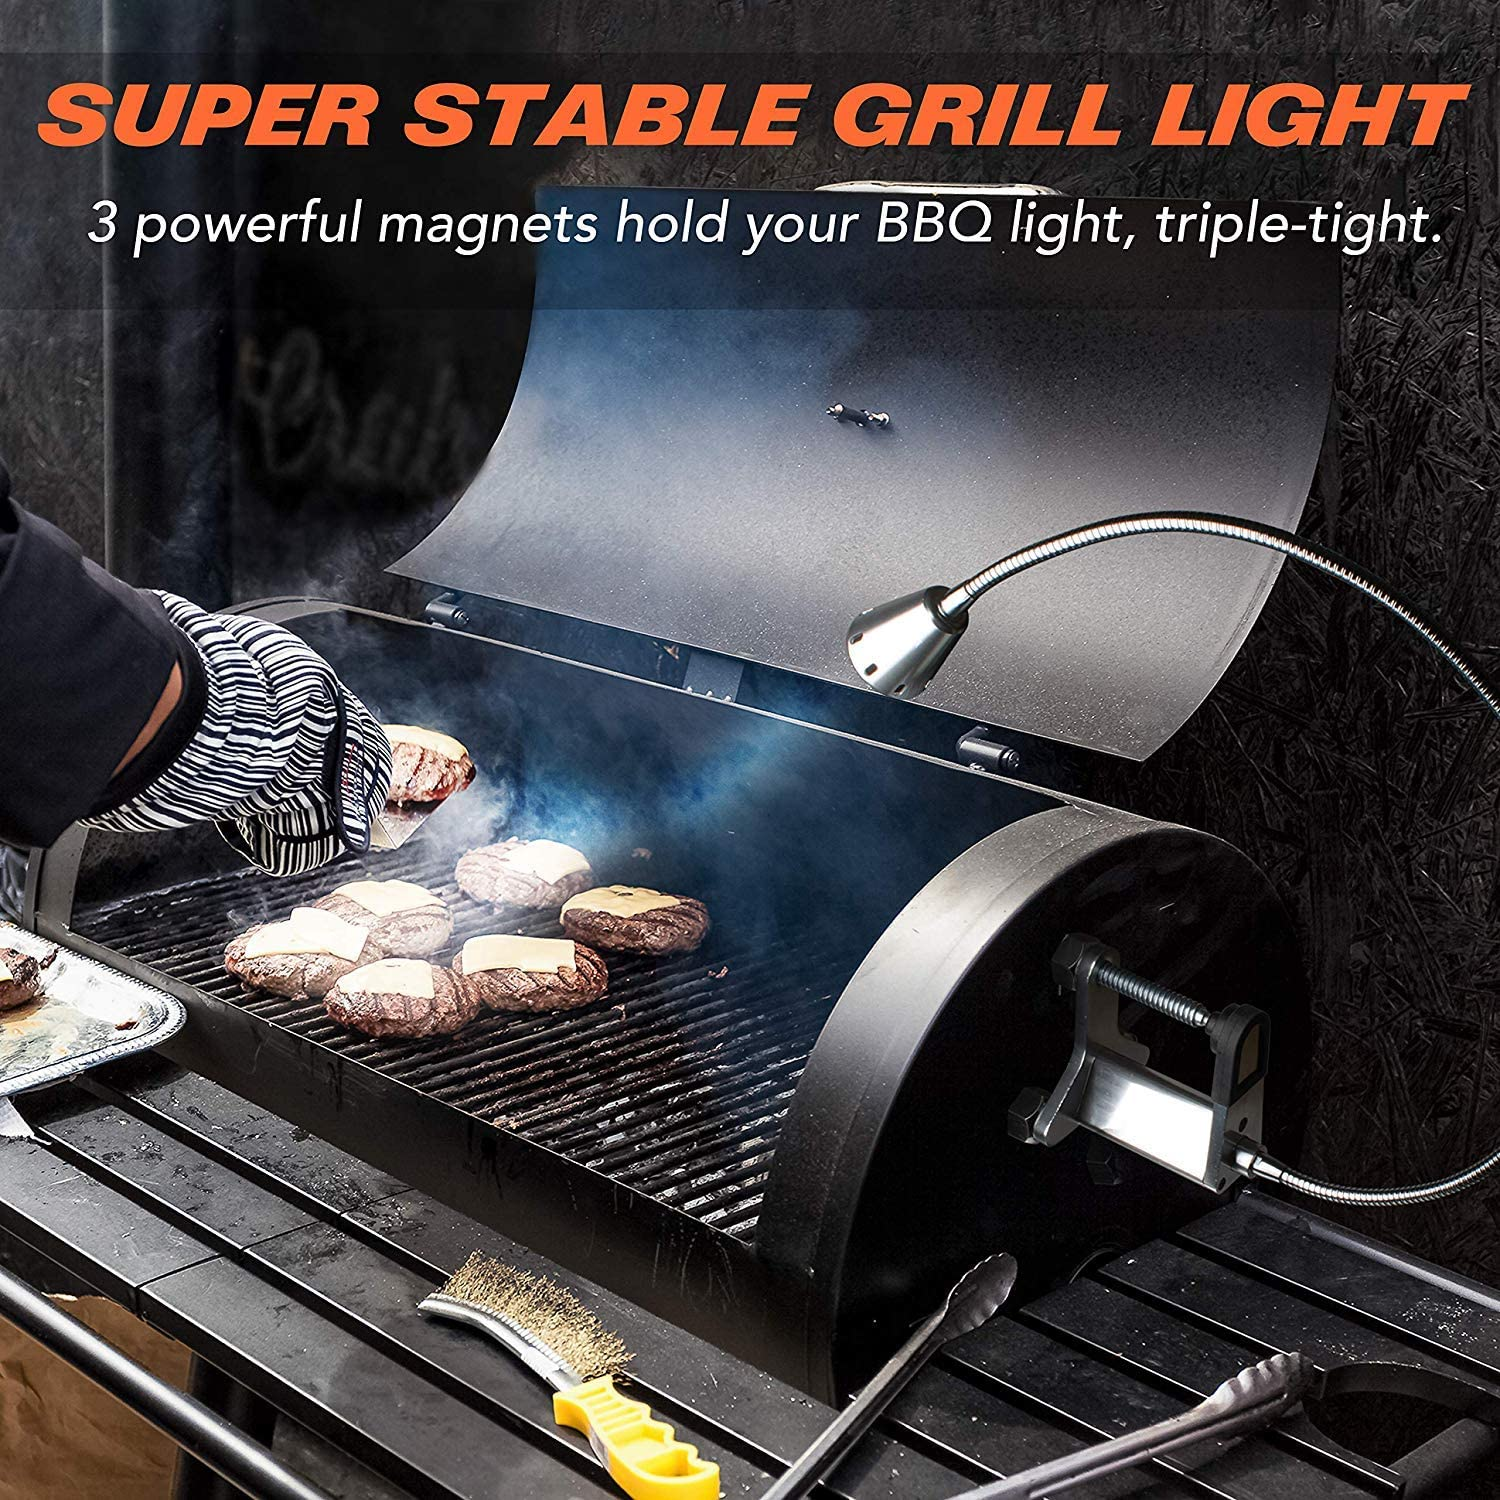 SHINGO Clamp and Grilling Accessories w// 3 Heavy Duty Magnets Magnetic Grill Light Cordless Grill Lights for BBQ